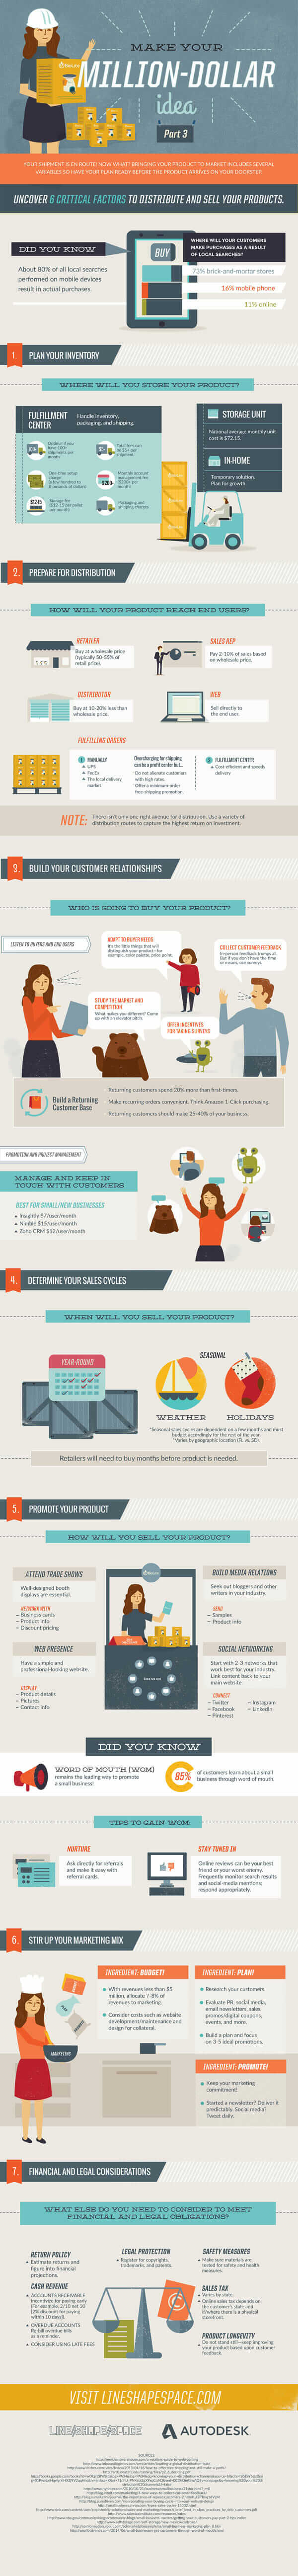 product_distribution_infographic